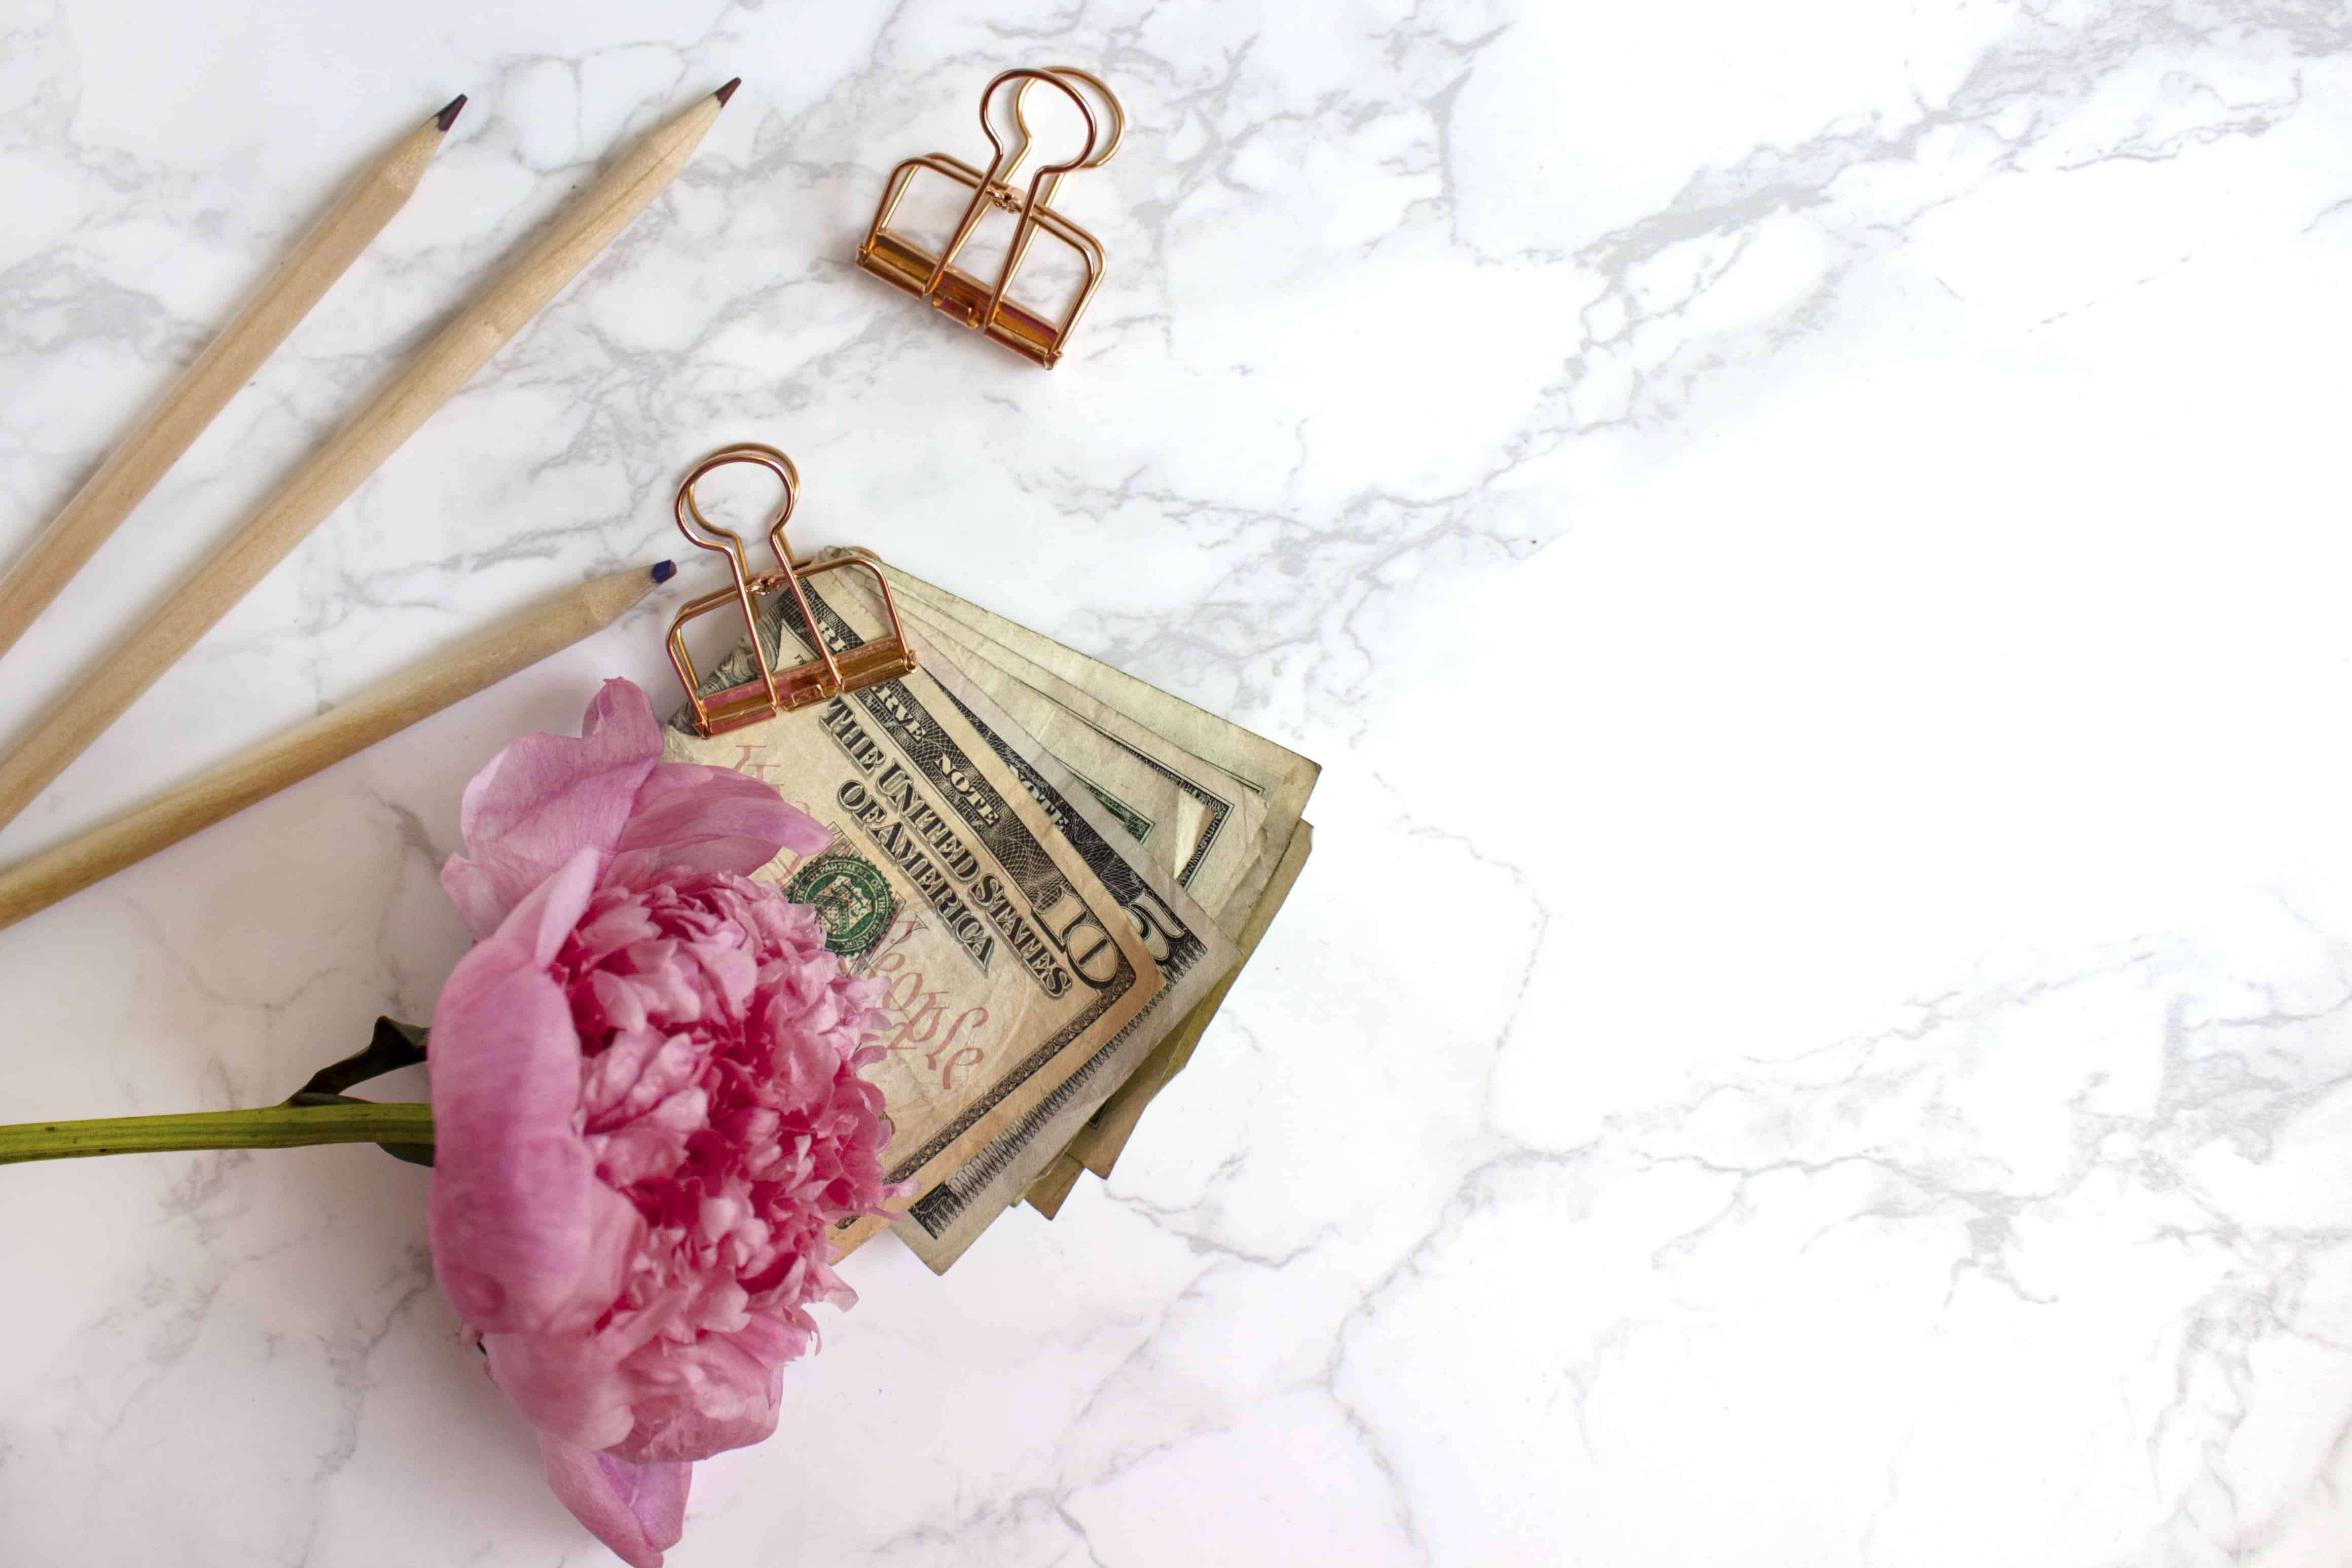 Money on counter - freelance writing